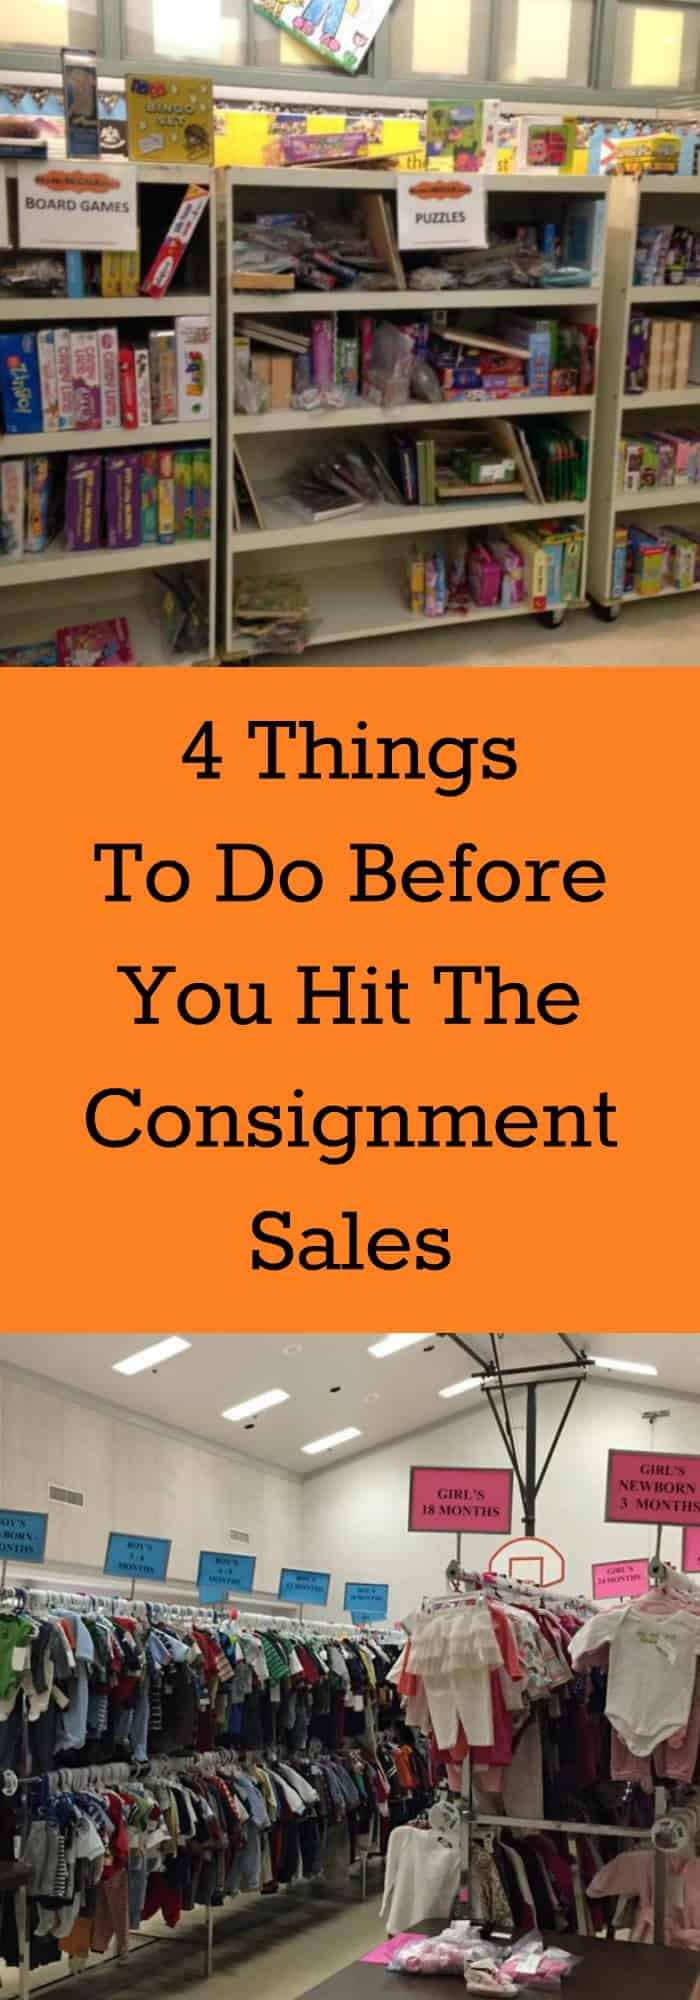 4 Things To Do Before You Hit The Consignment Sales--The Organized Mom